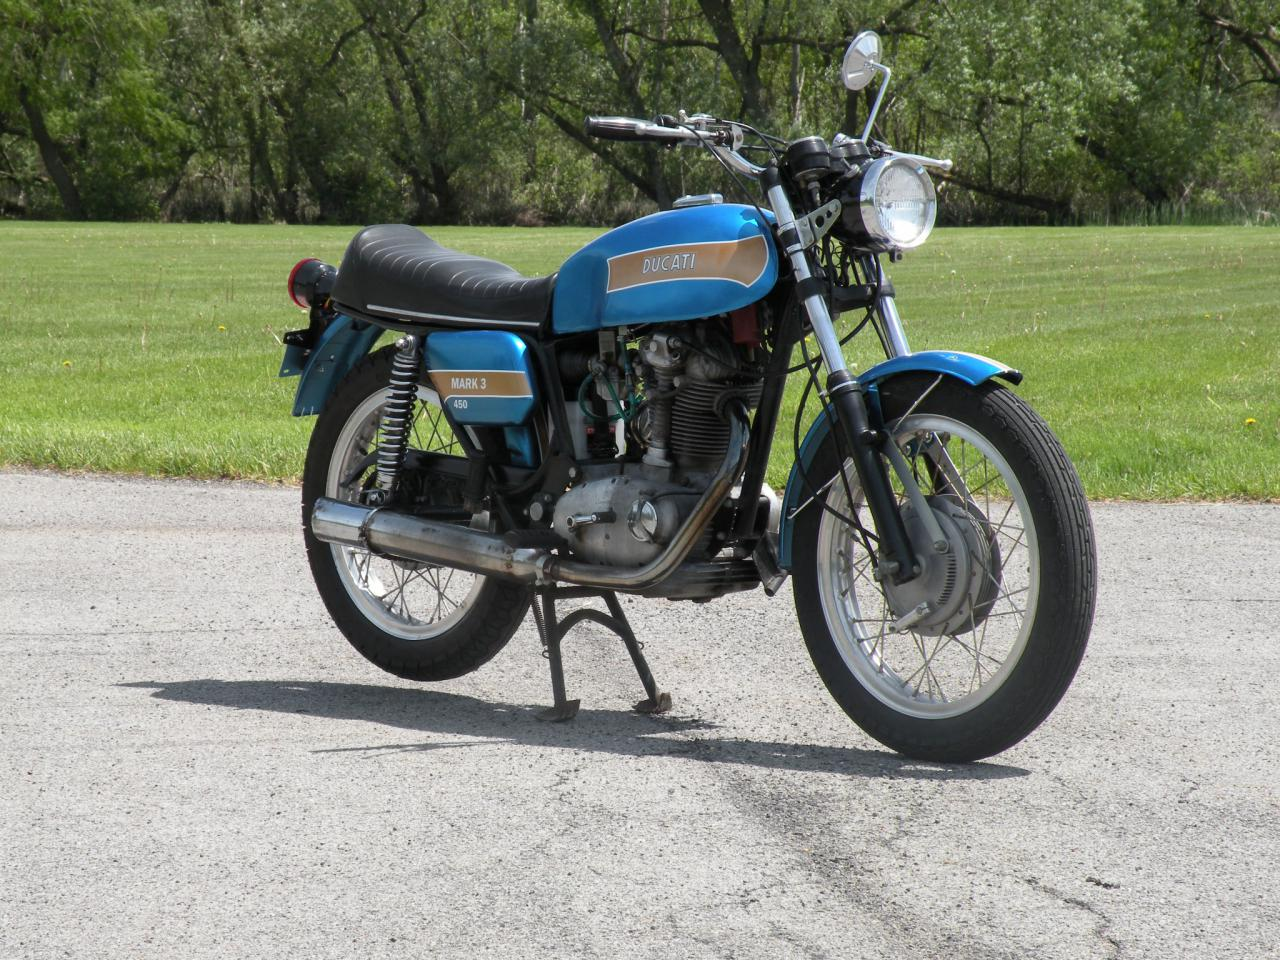 Ducati 450 Mark 3 1971 images #148087